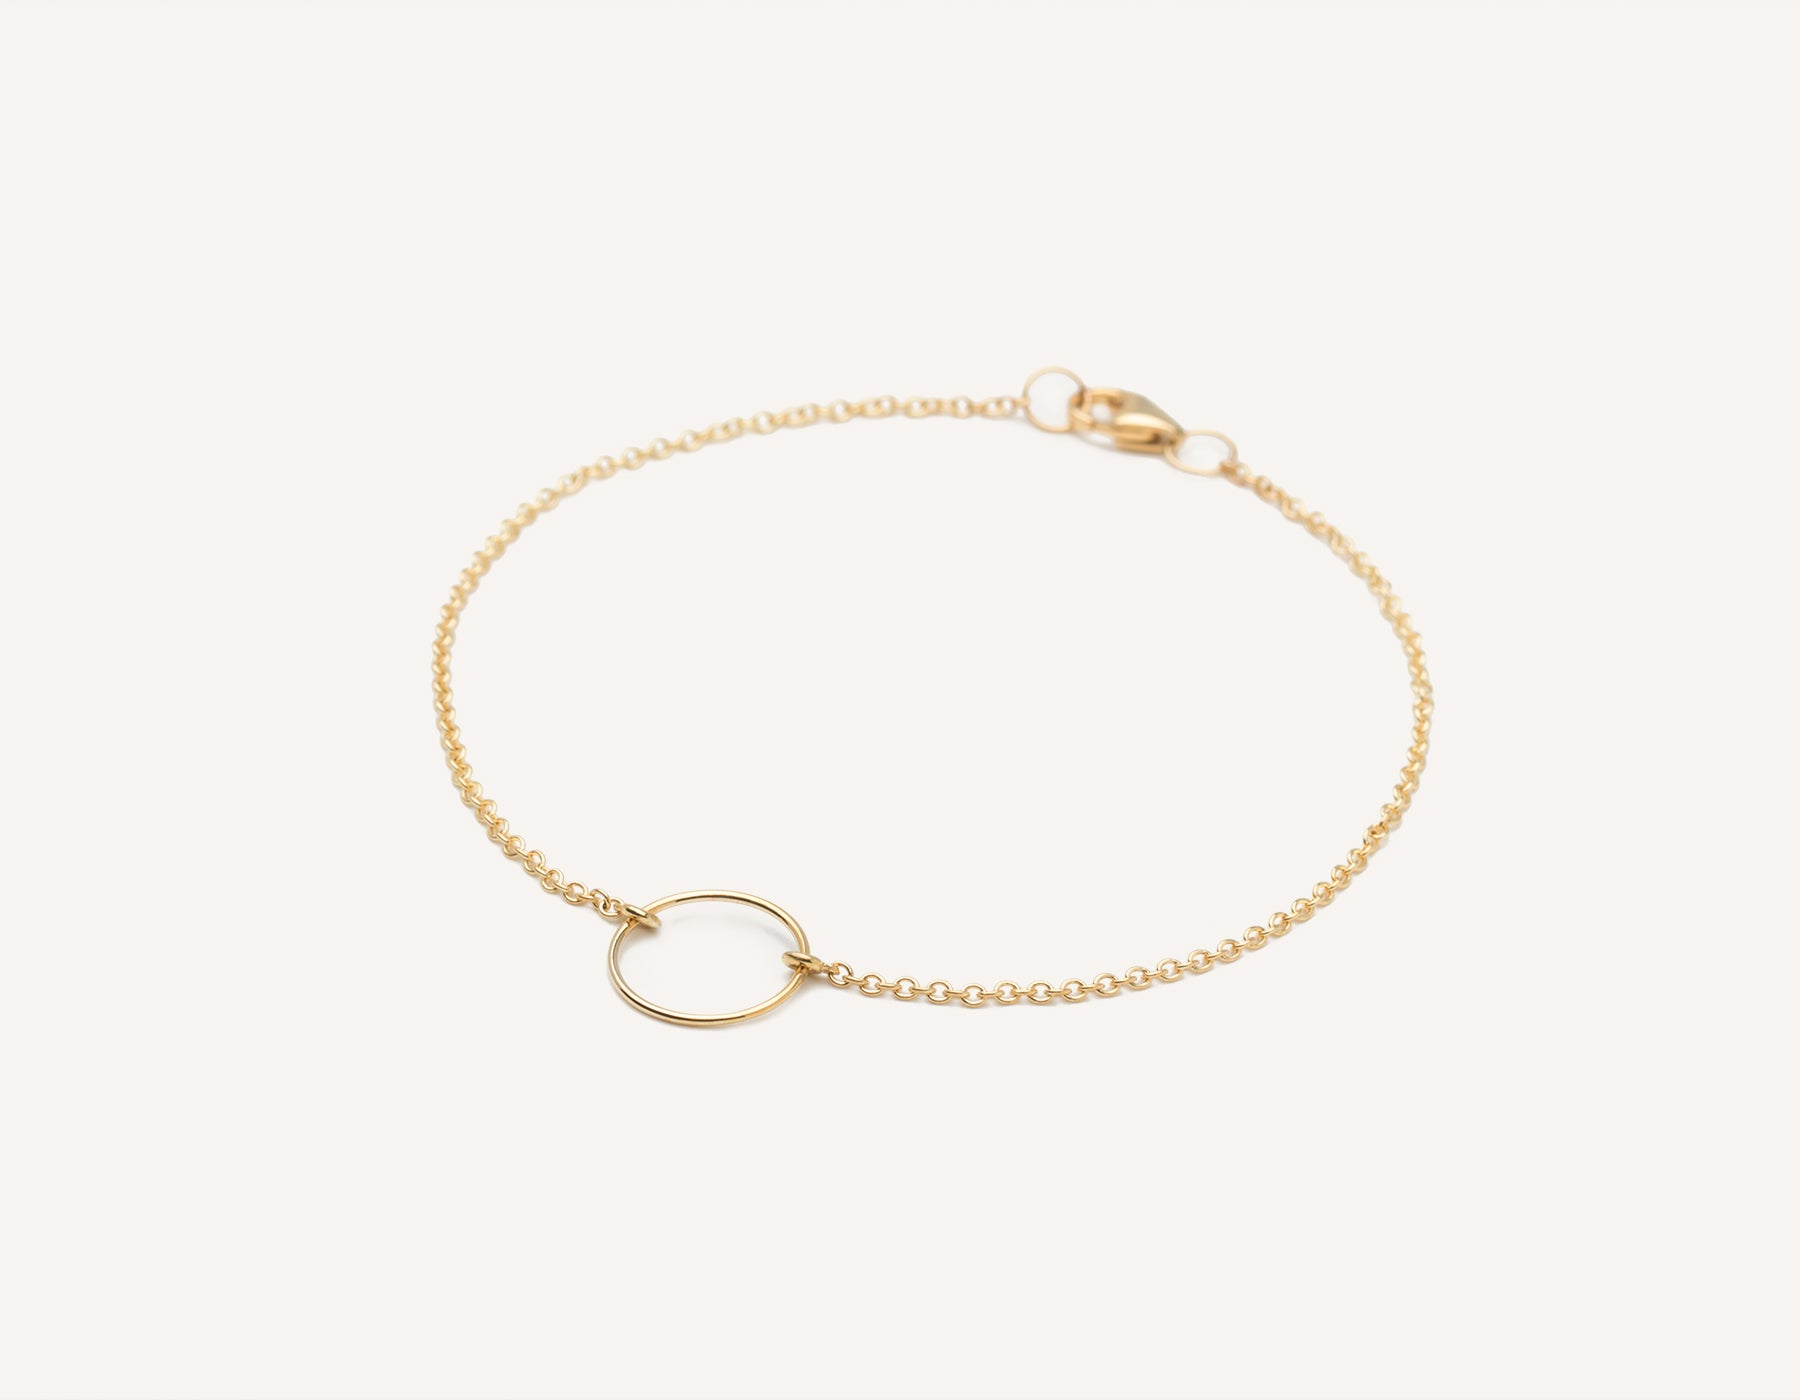 Vrai and Oro modern minimalist 14k solid gold wire Circle Bracelet on dainty chain with lobster clasp, 14K Yellow Gold